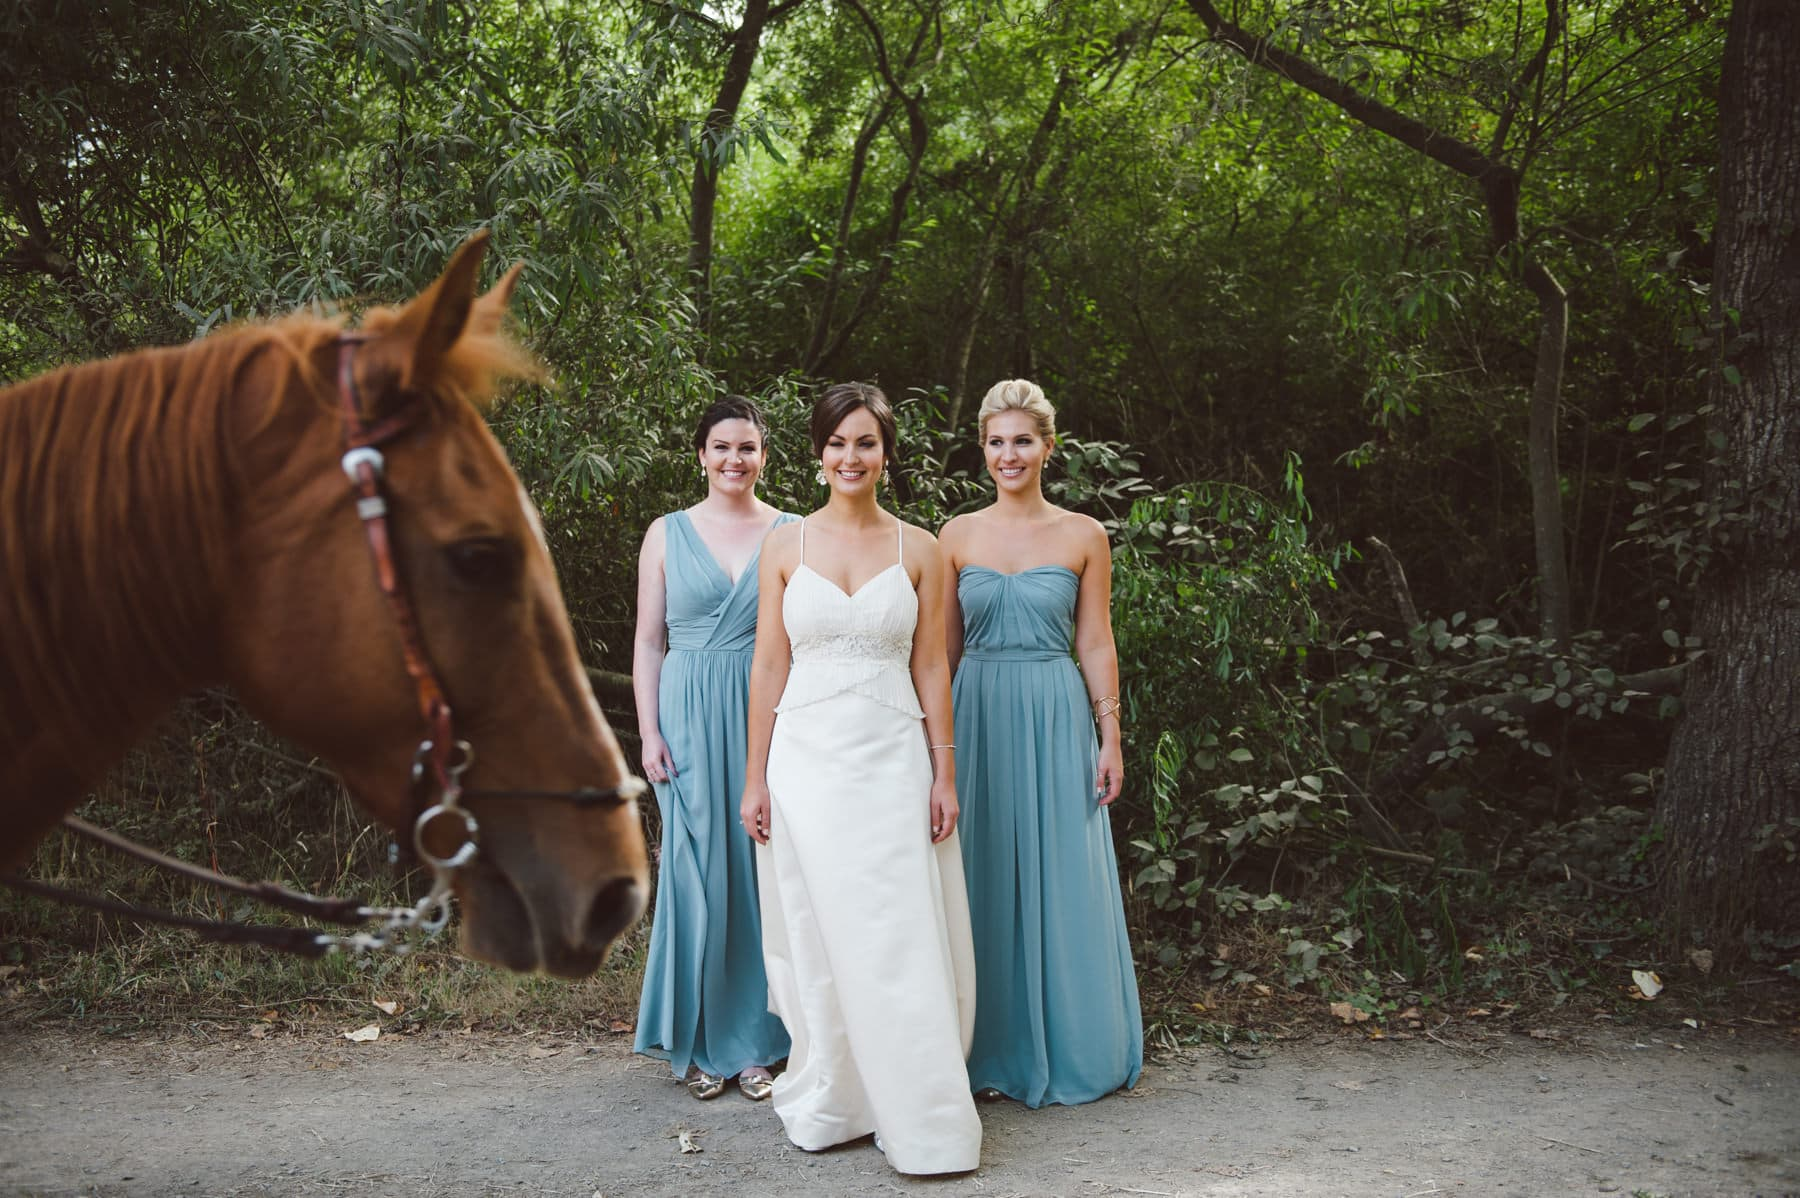 Pelican Inn Bridal Portrait with horse walking in front